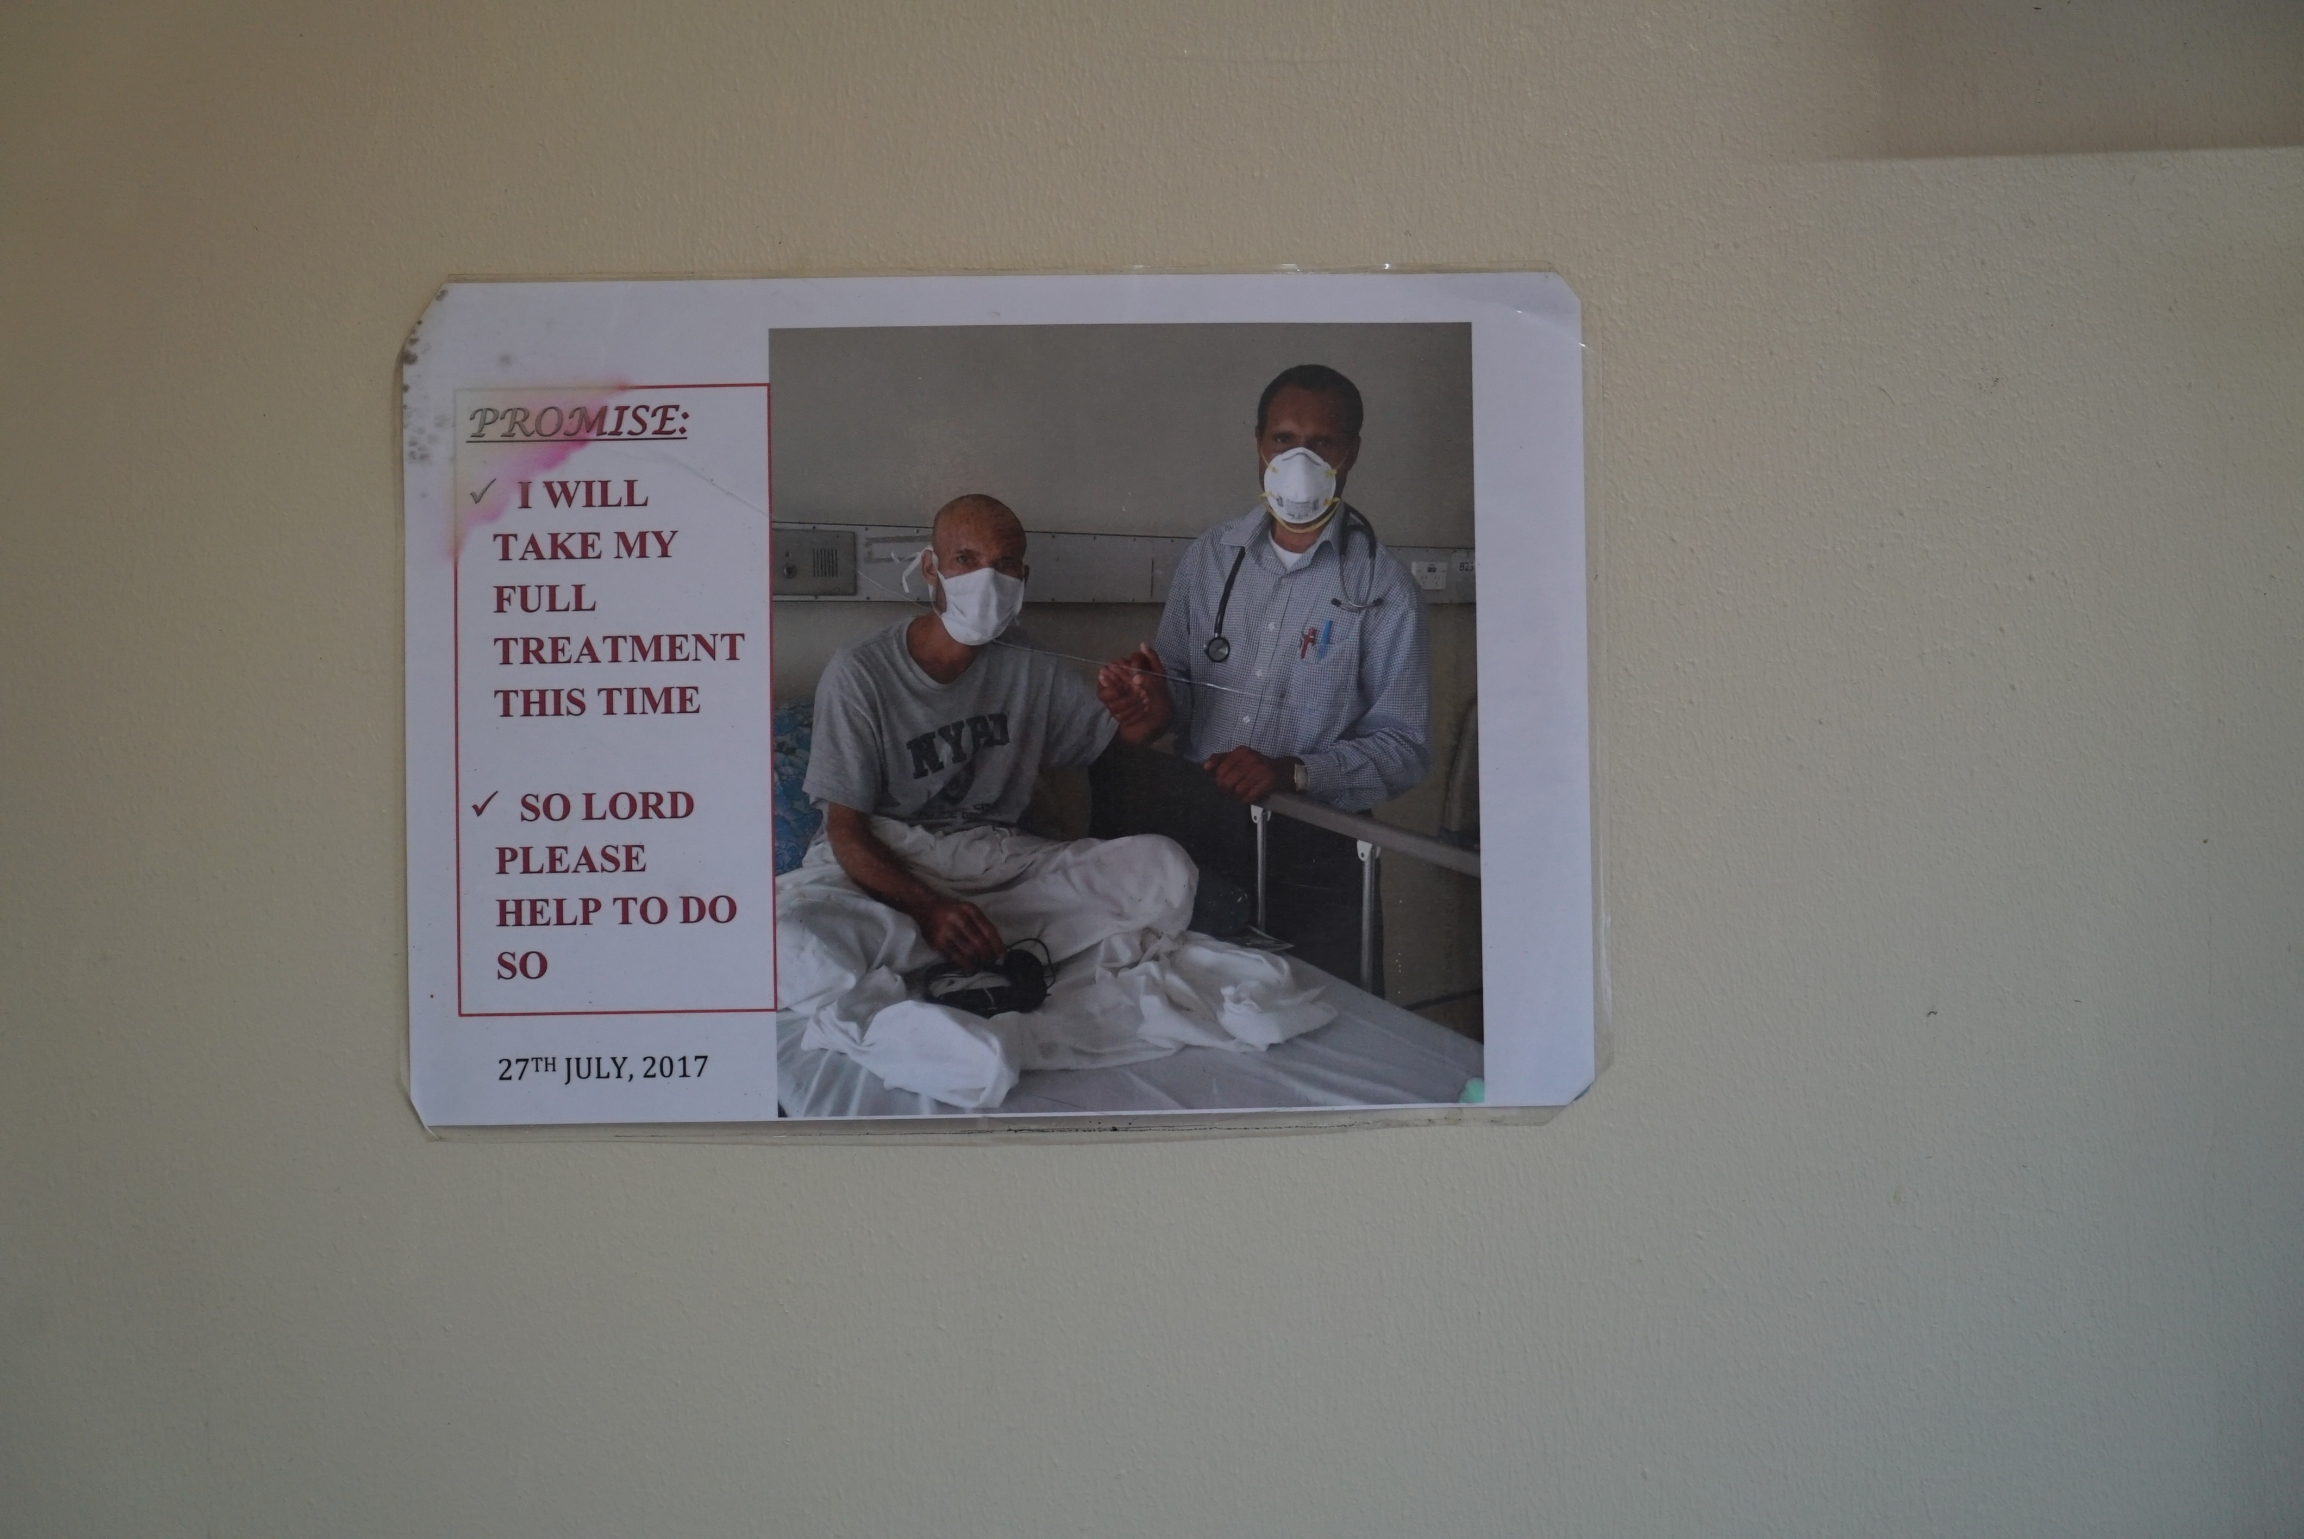 An image of a TB patient and his doctor hung on a wall